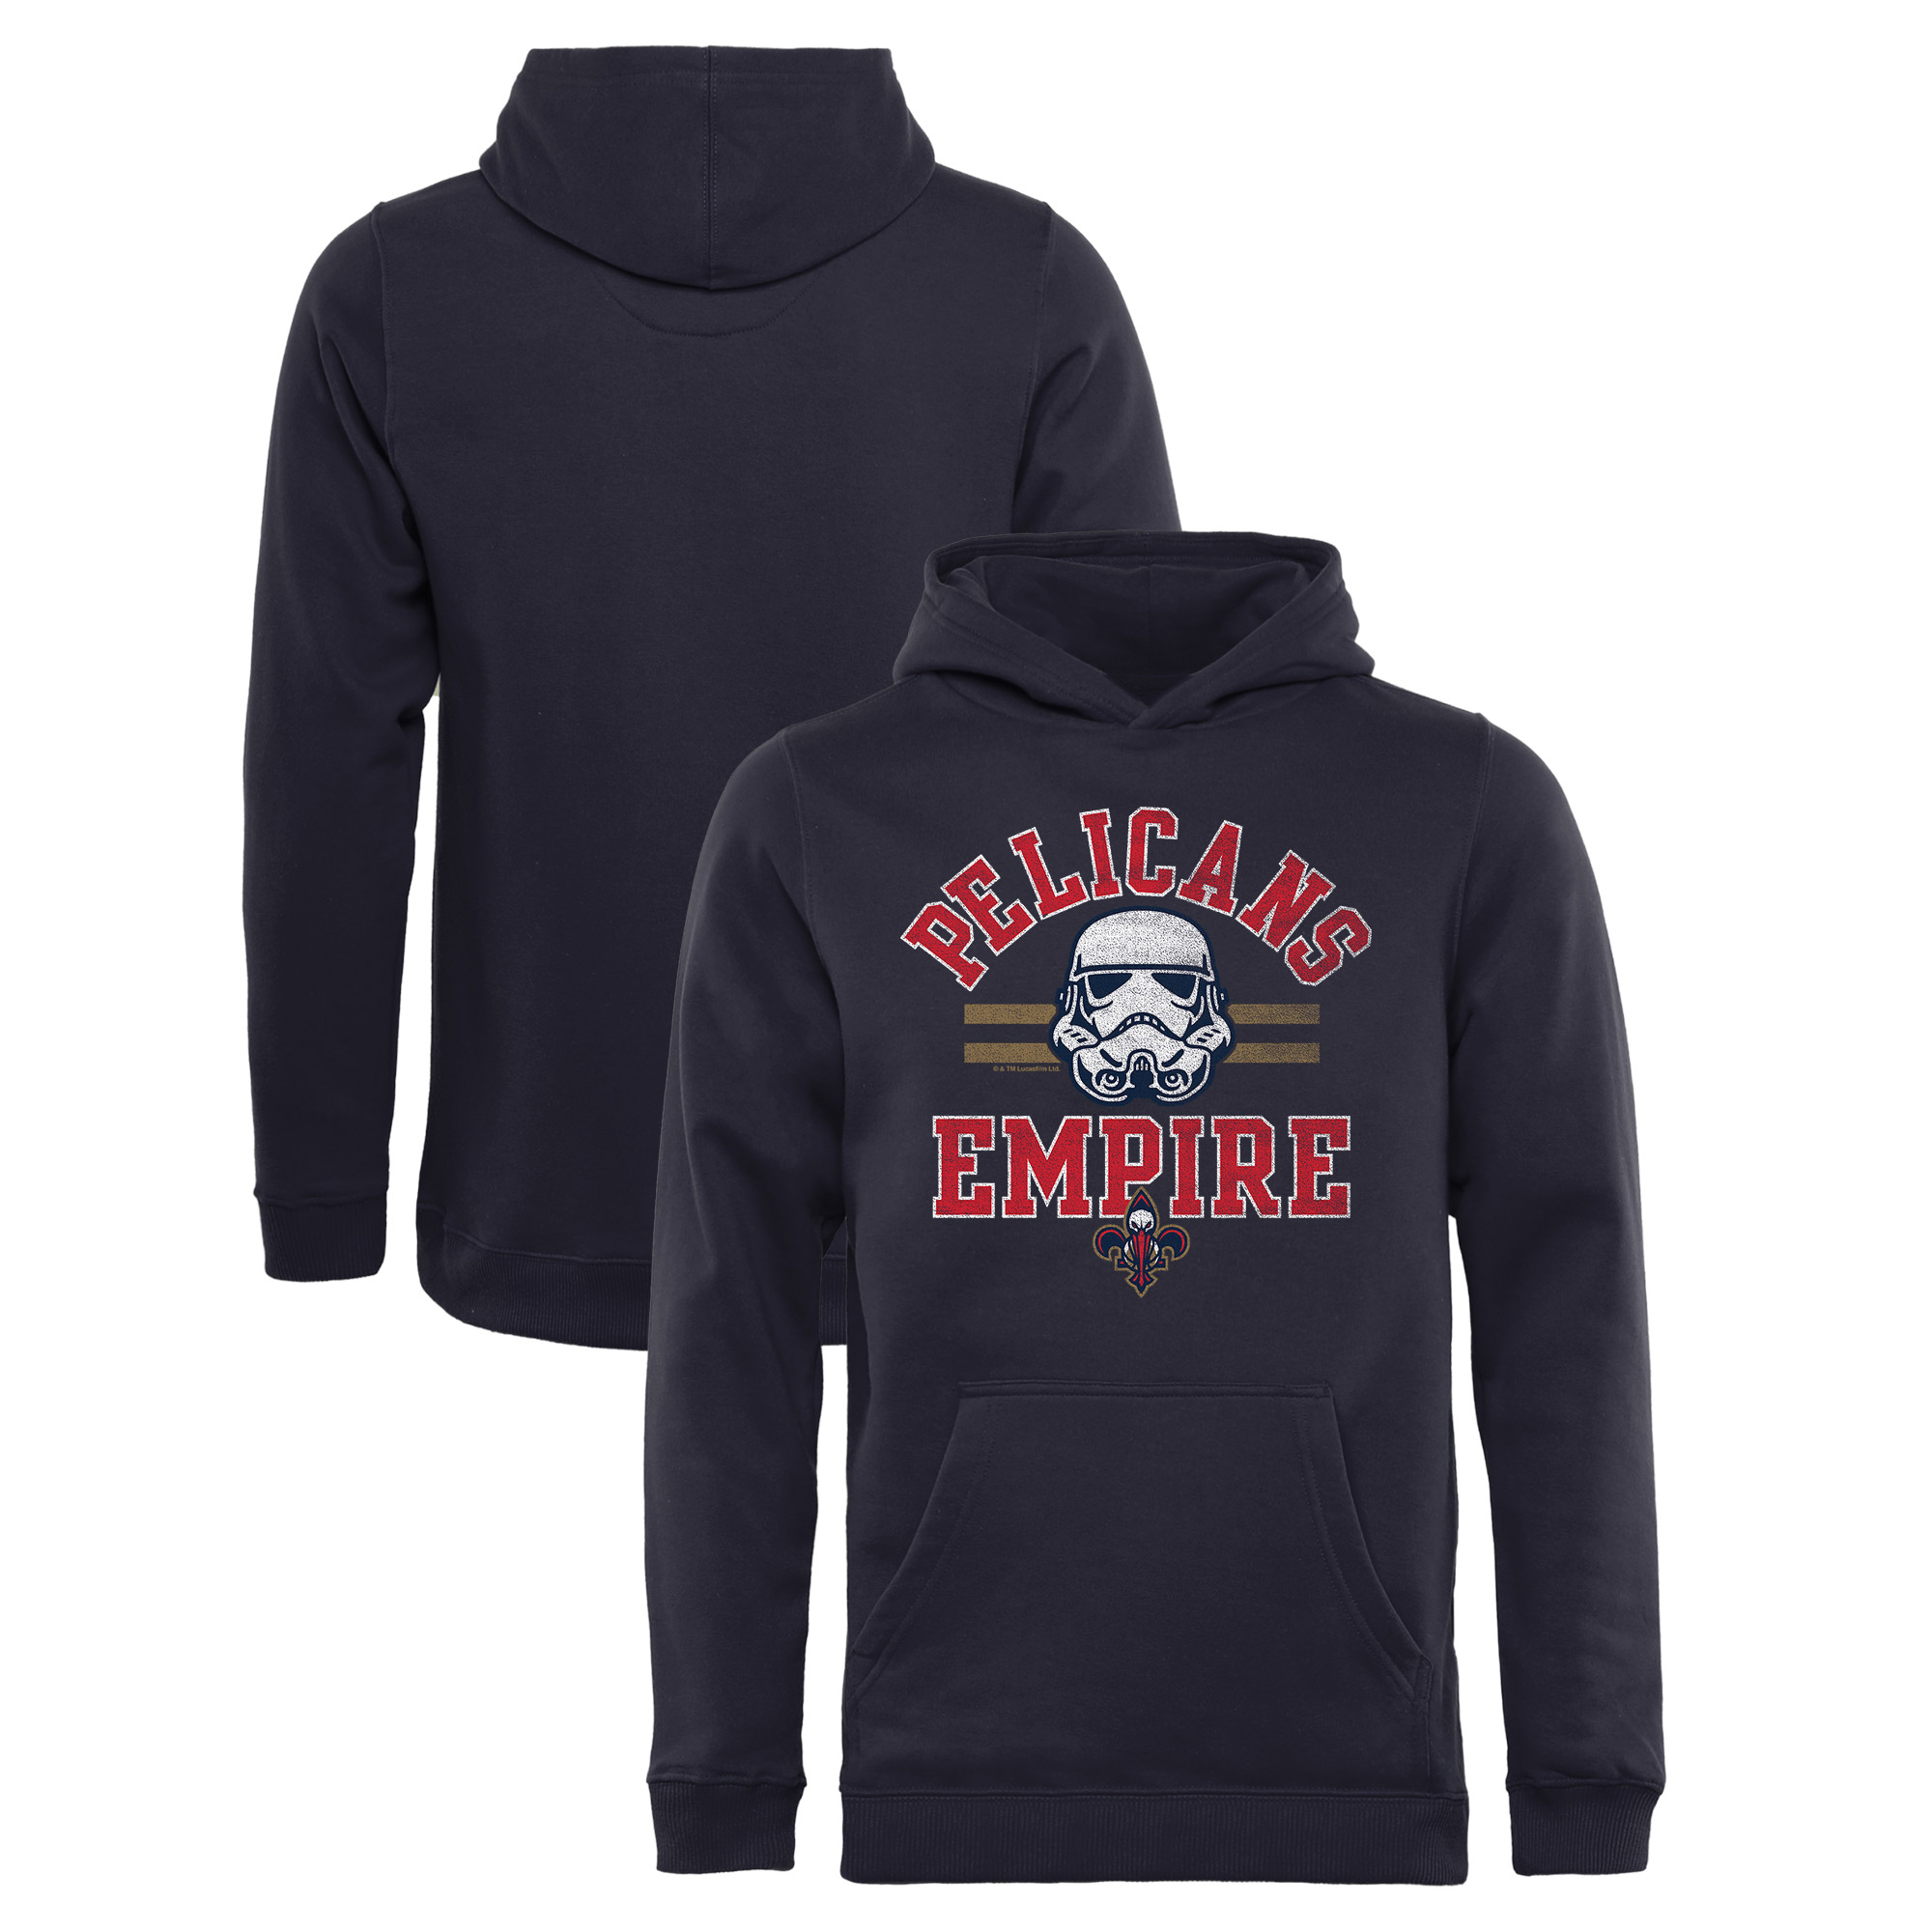 New Orleans Pelicans Fanatics Branded Youth Star Wars Empire Pullover Hoodie - Navy